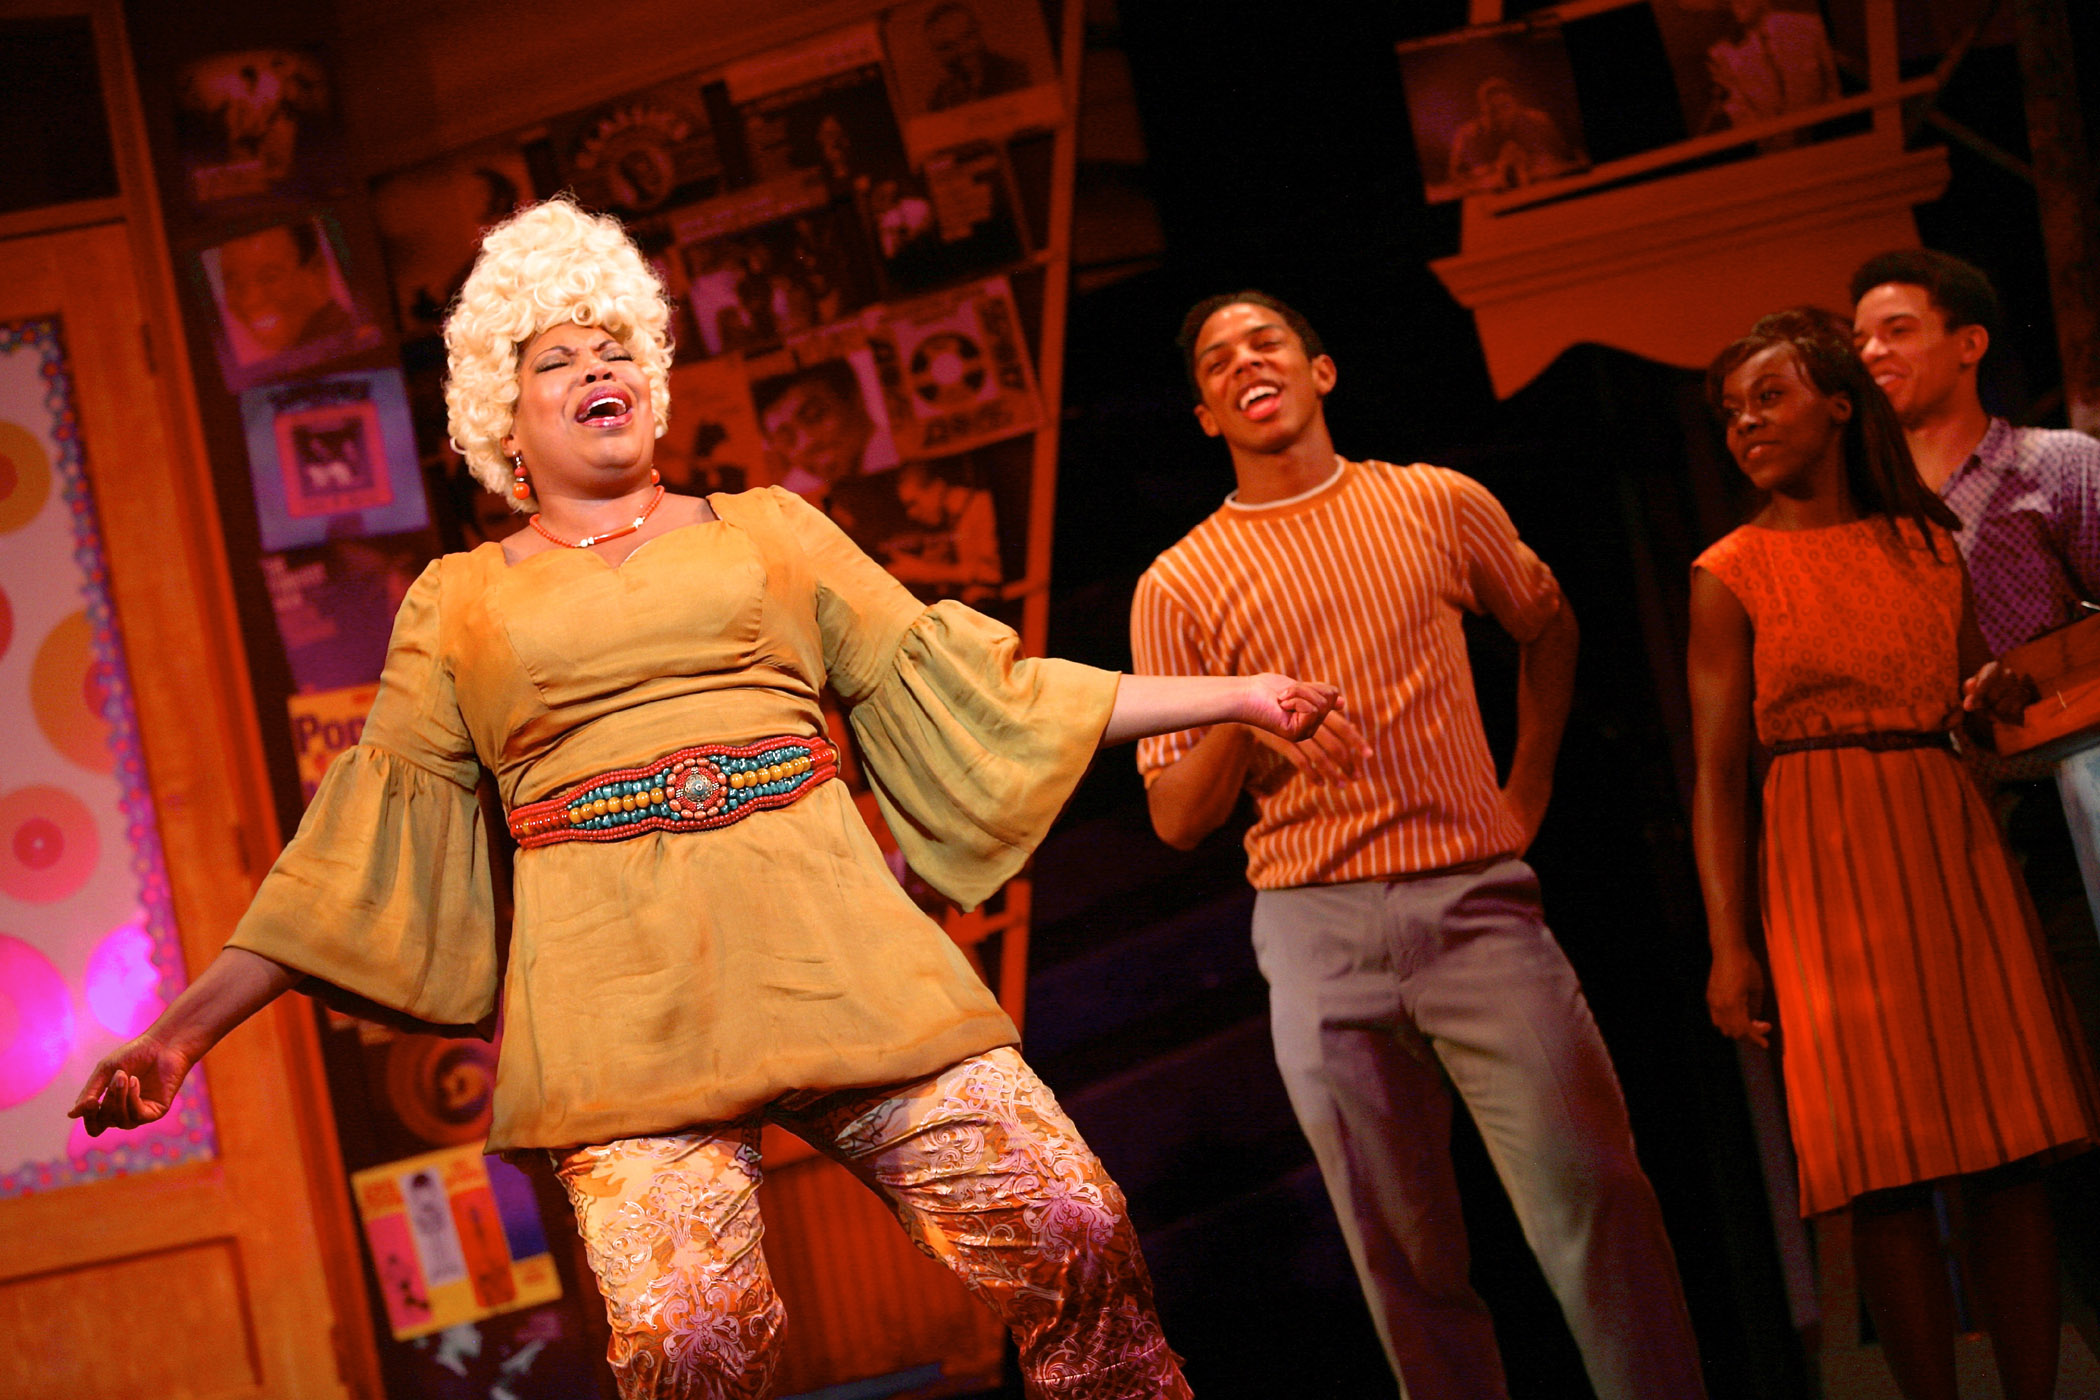 Aurelia Williams (Motormouth), Austin Holmes (Seaweed), Tay Cooley (Cindy), and Ethan Butler (Stooie) in HAIRSPRAY. Photographer: Michael Davis